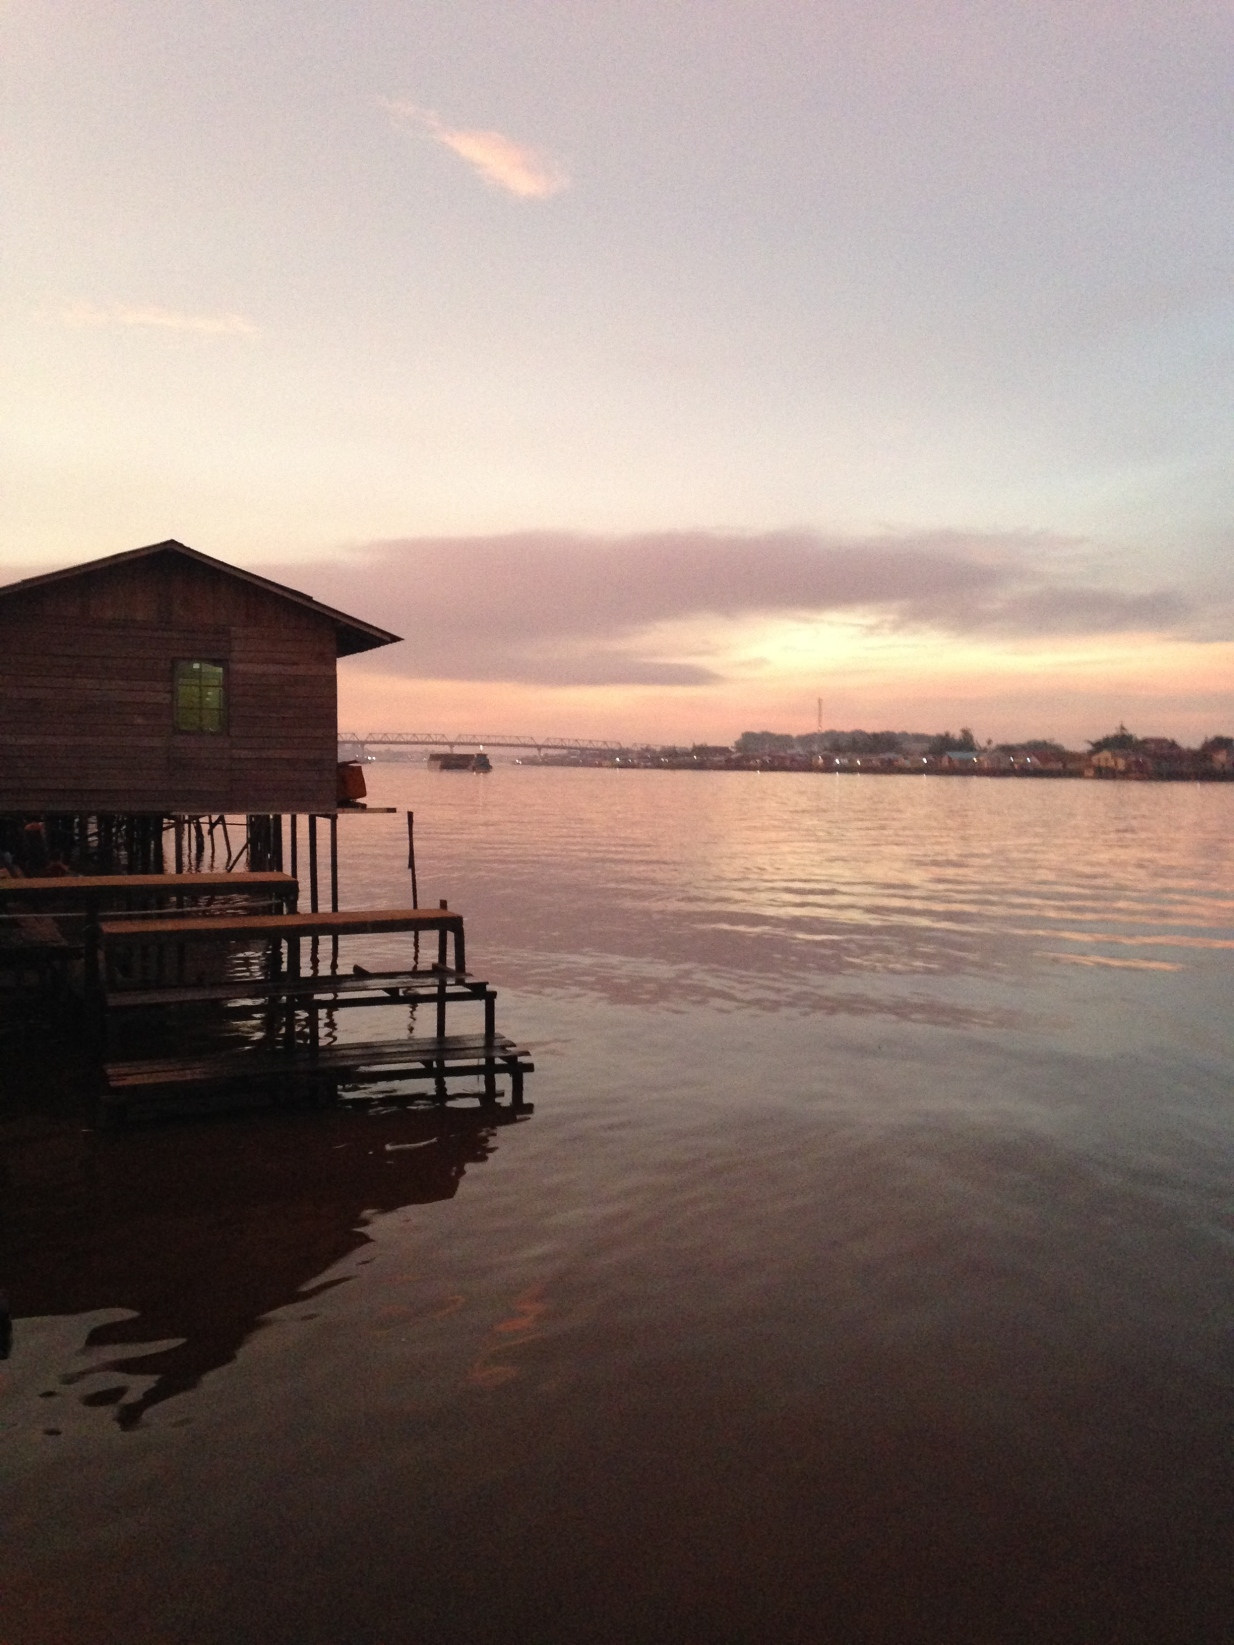 Afternoon stroll by Kapuas River, the longest river in Kalimantan. - By Bianca Rajan placed in Pontianak, West Kalimantan